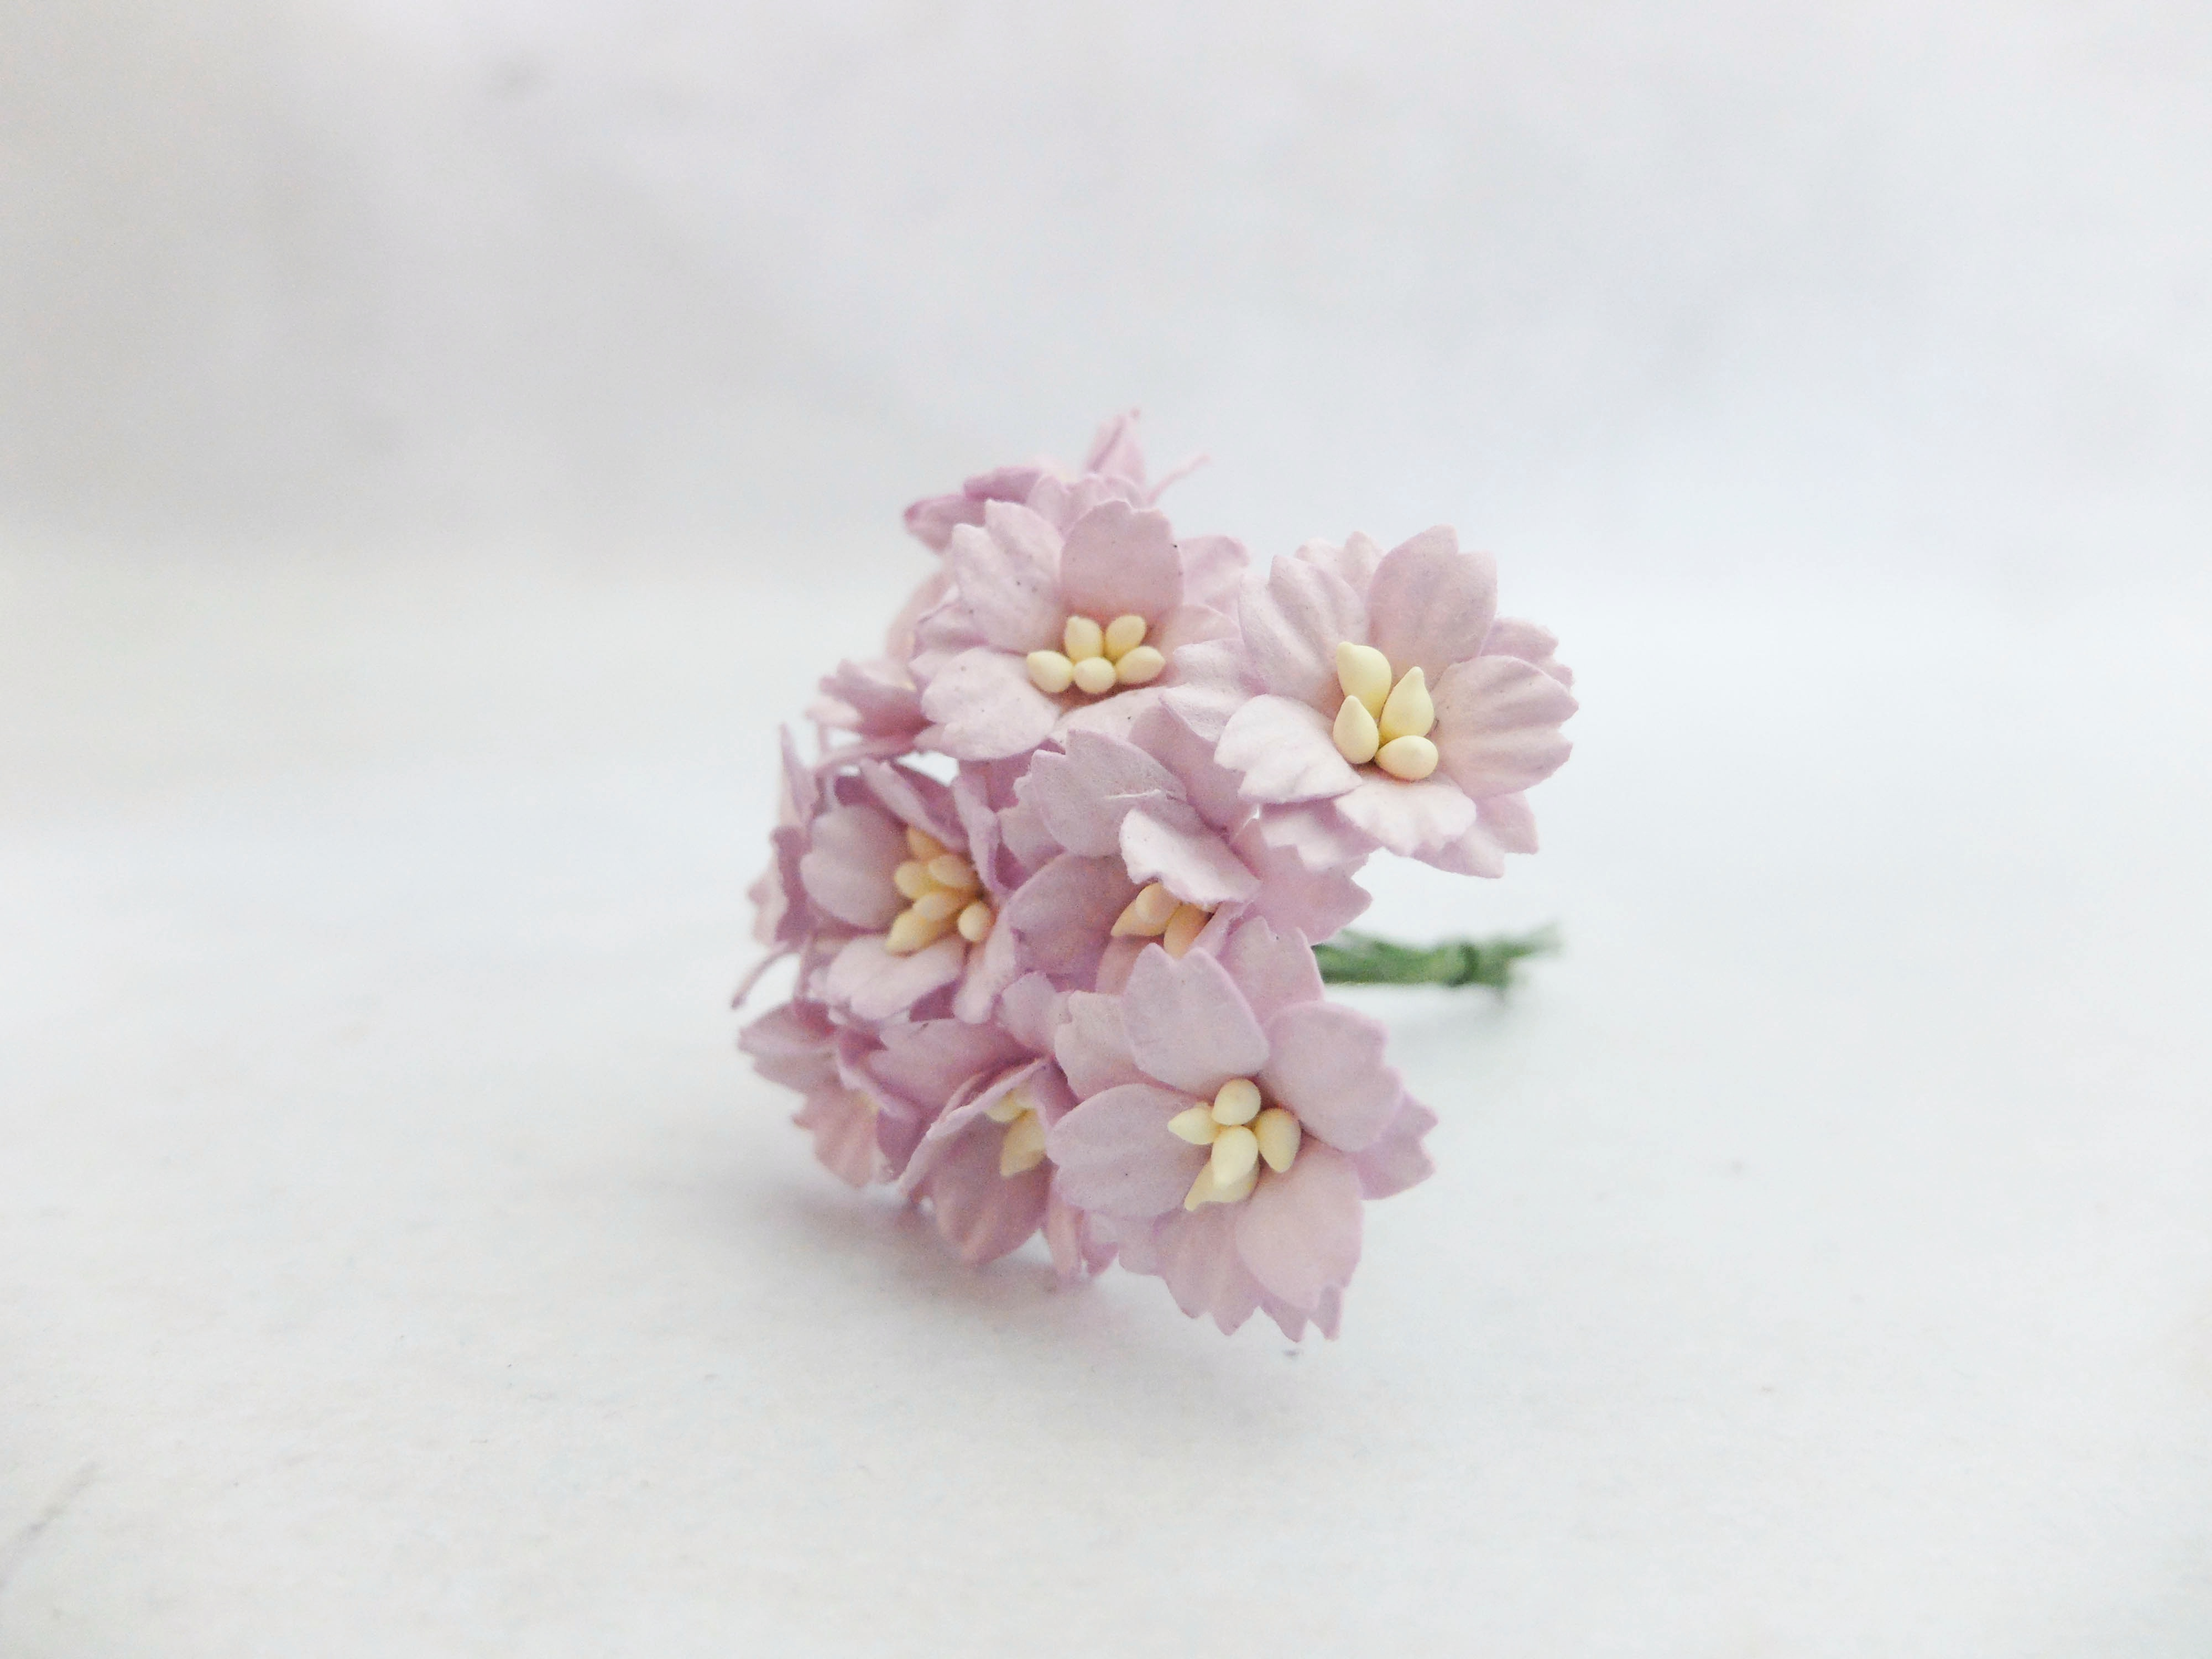 2 cm paper cherry blossom mulberry flowers with wire stems 20mm paper cherry blossom mightylinksfo